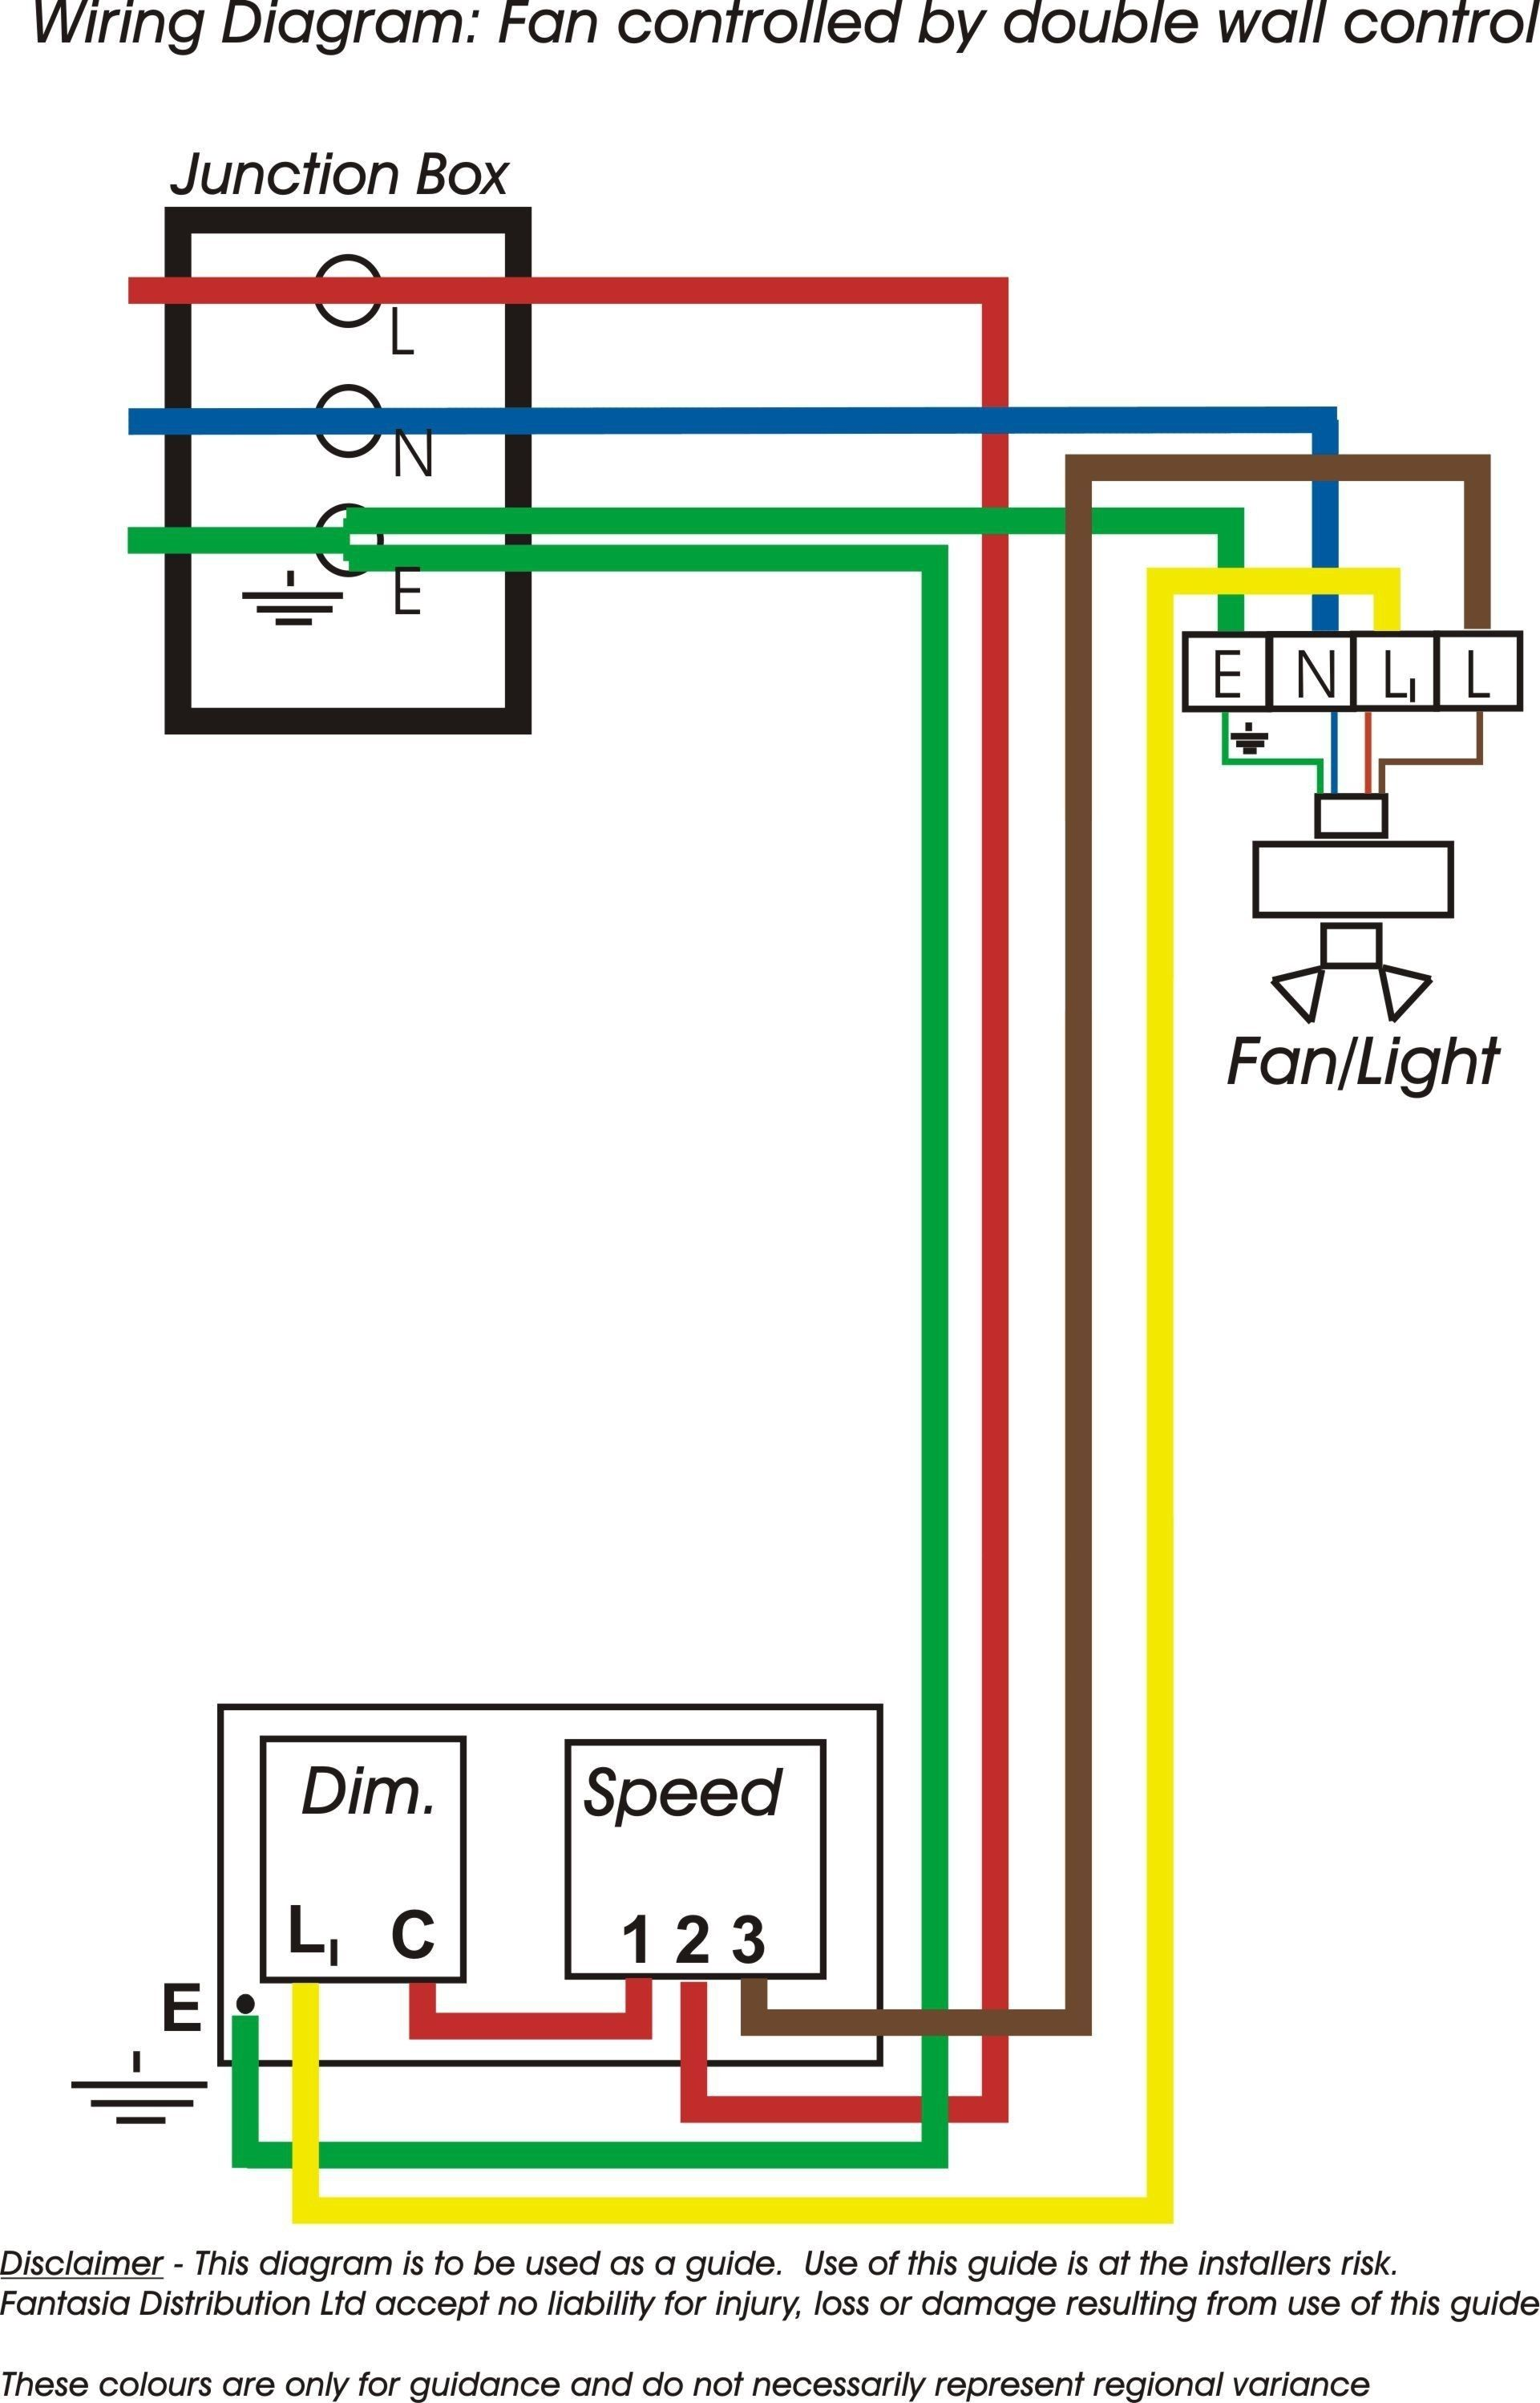 elegant wiring diagram for a light with two switches #diagrams  #digramssample #diagramimages #wiri… | ceiling fan switch, ceiling fan  wiring, ceiling fan pull chain  pinterest